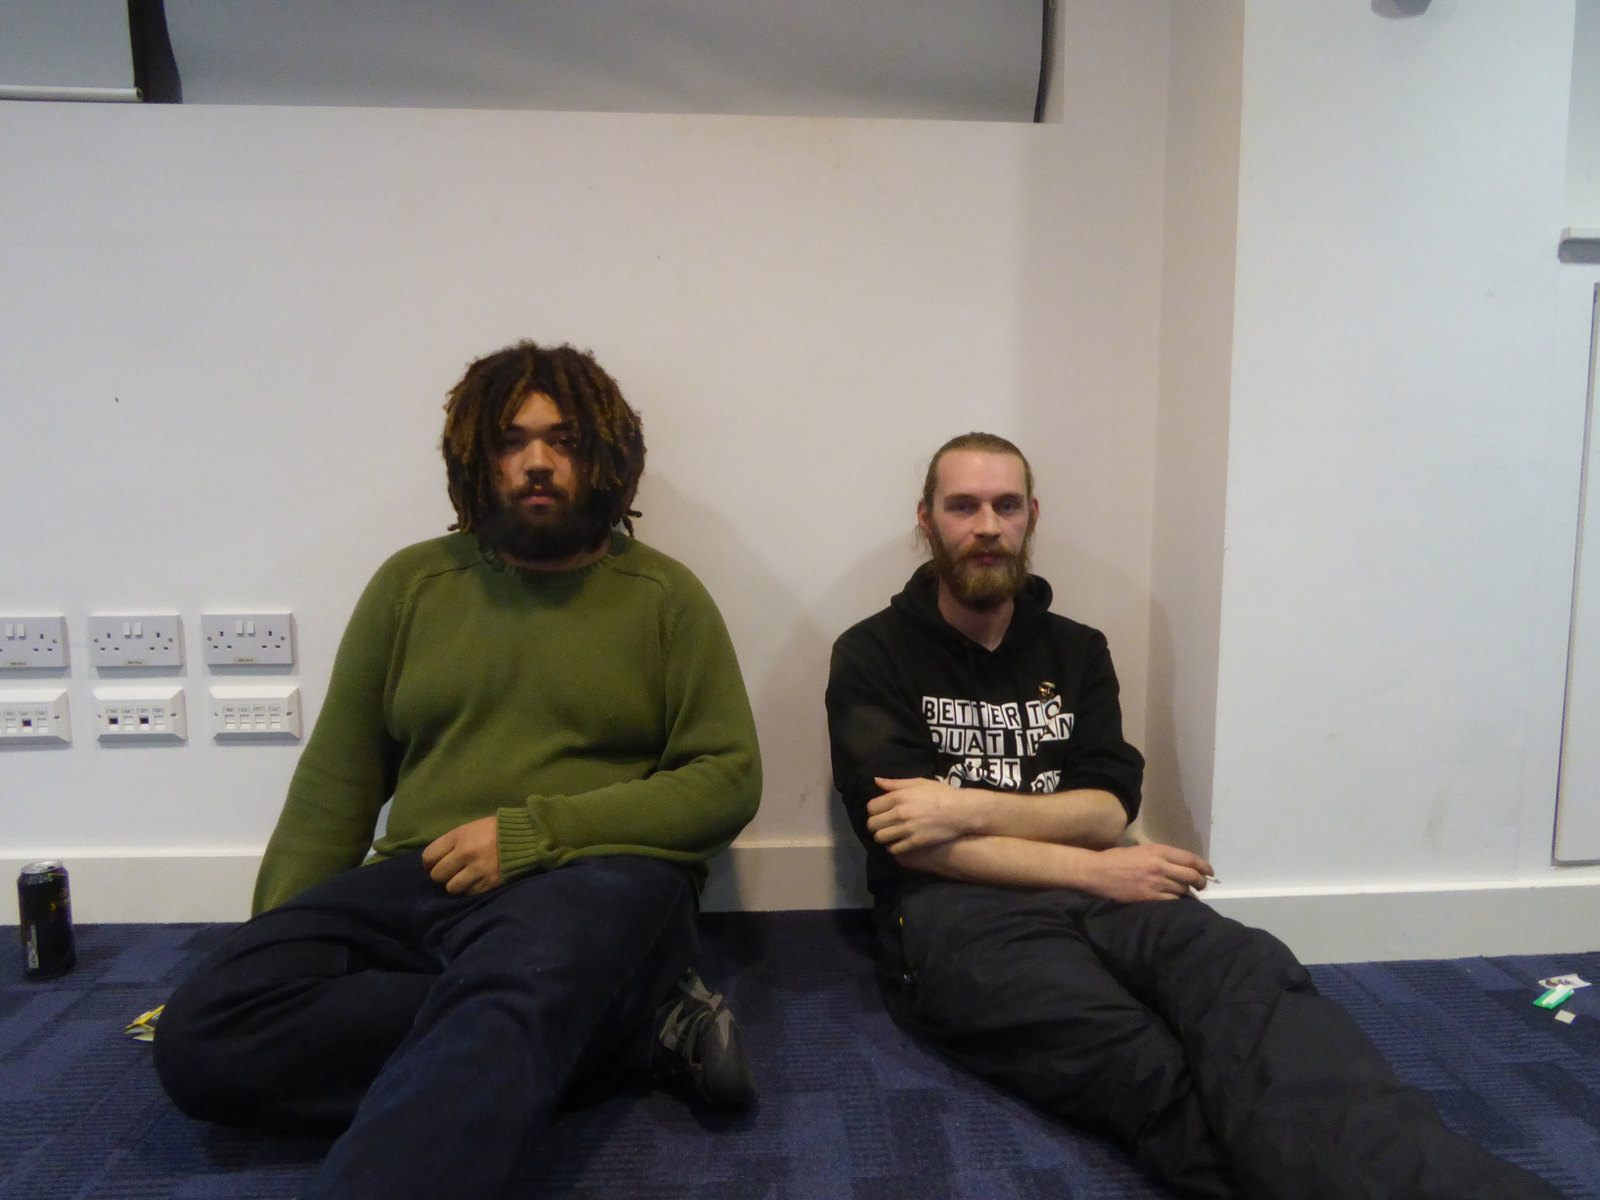 tured-here-in-their-new-squat-Big-Danny-l-and-Little-Danny-r-were-involved-in-setting-up-the-MAN.jpg